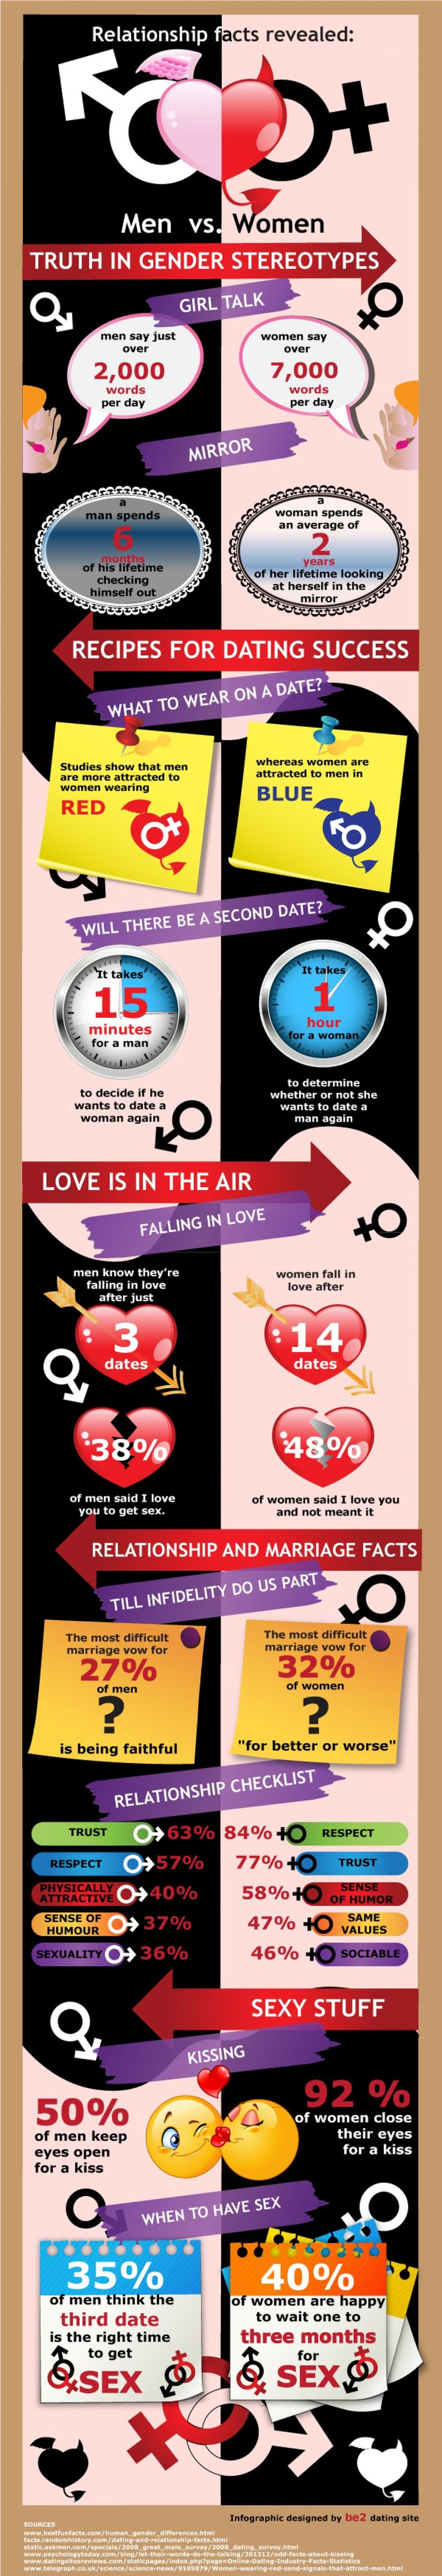 Check out these stereotypes men and women have about dating #FixYourPicker #DrDar #LoveFactor